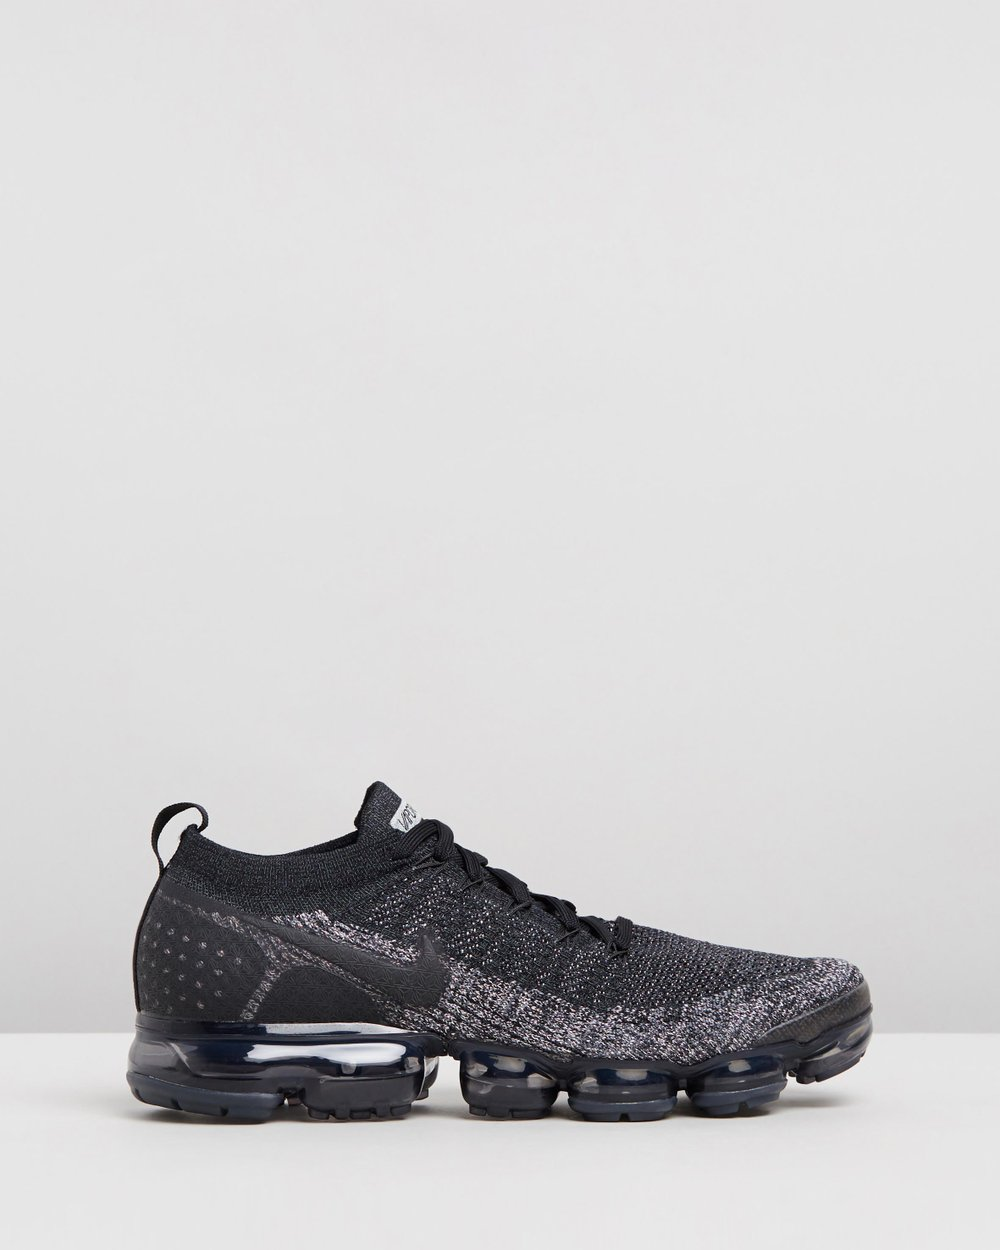 new style febfe e1c7b Air Vapormax Flyknit 2 - Men's